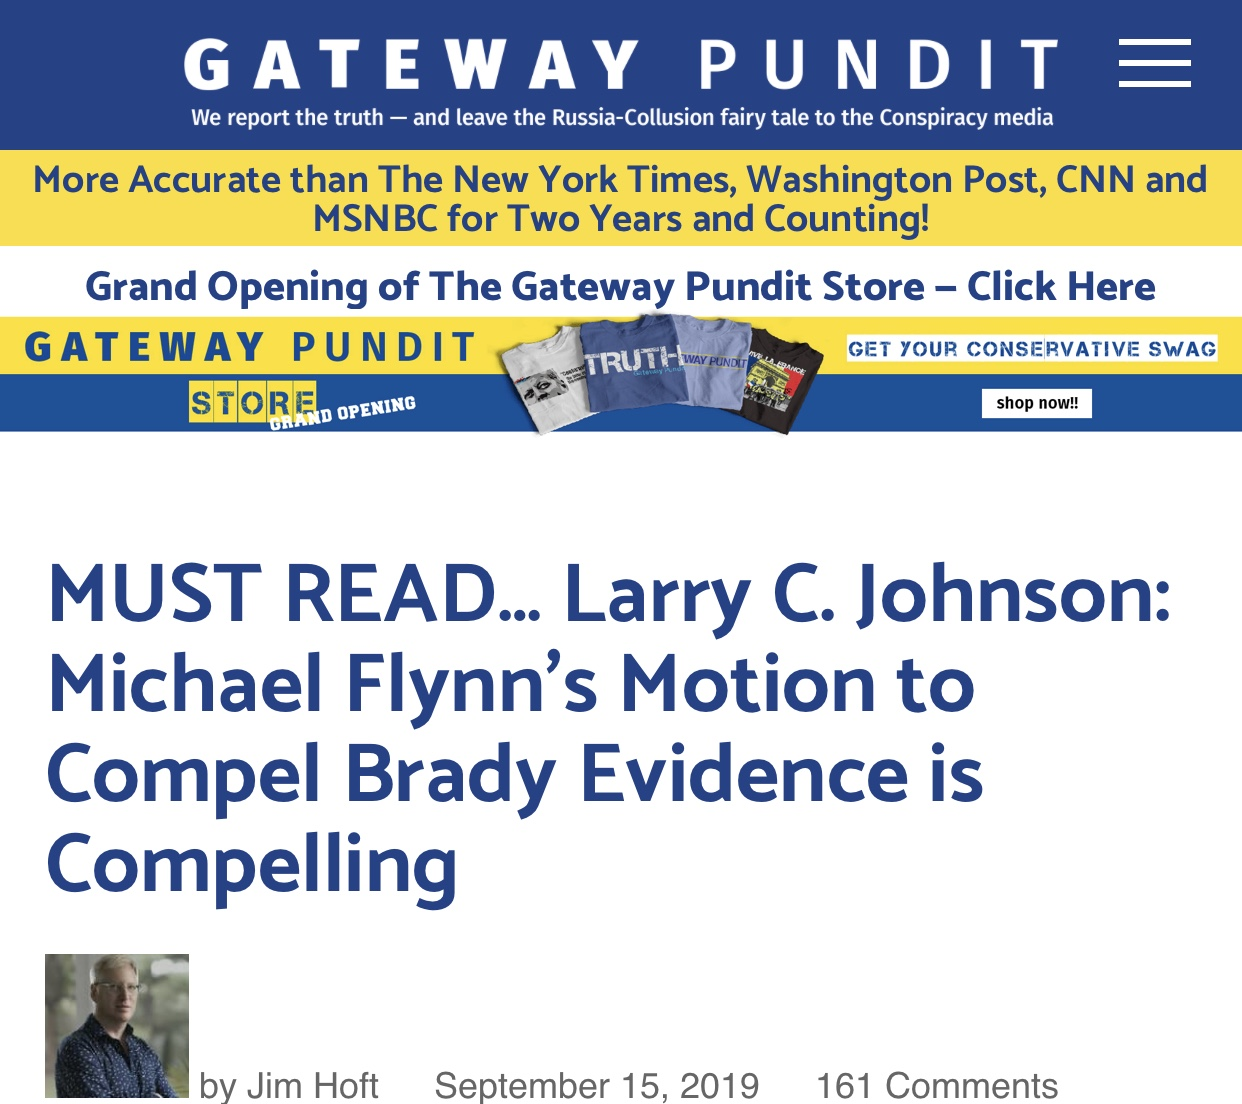 MUST READ… Larry C. Johnson: Michael Flynn's Motion to Compel Brady Evidence is Compelling